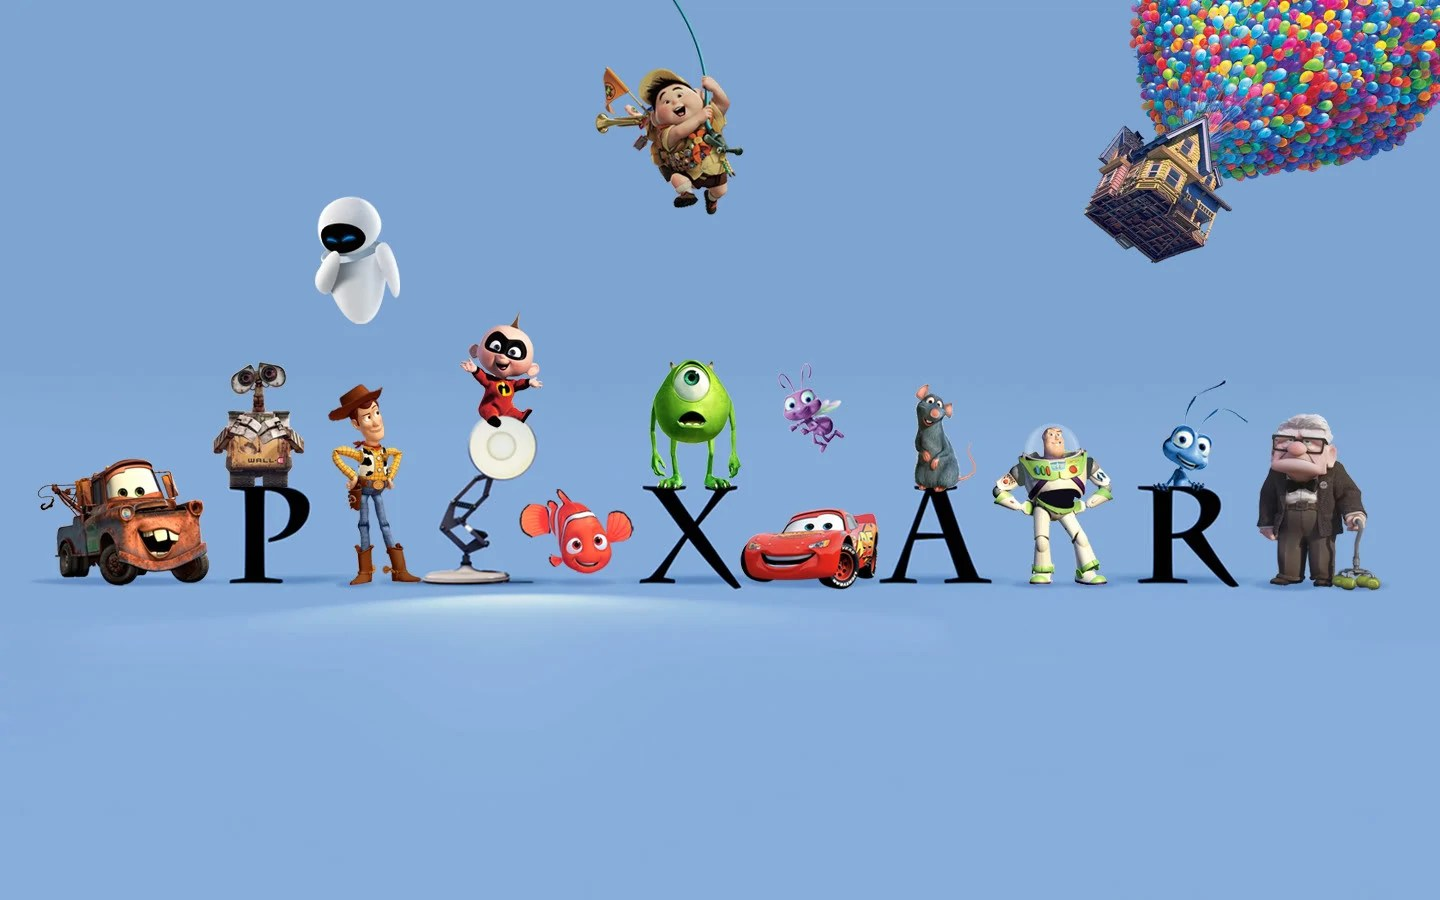 Pixar logo, with flourishes